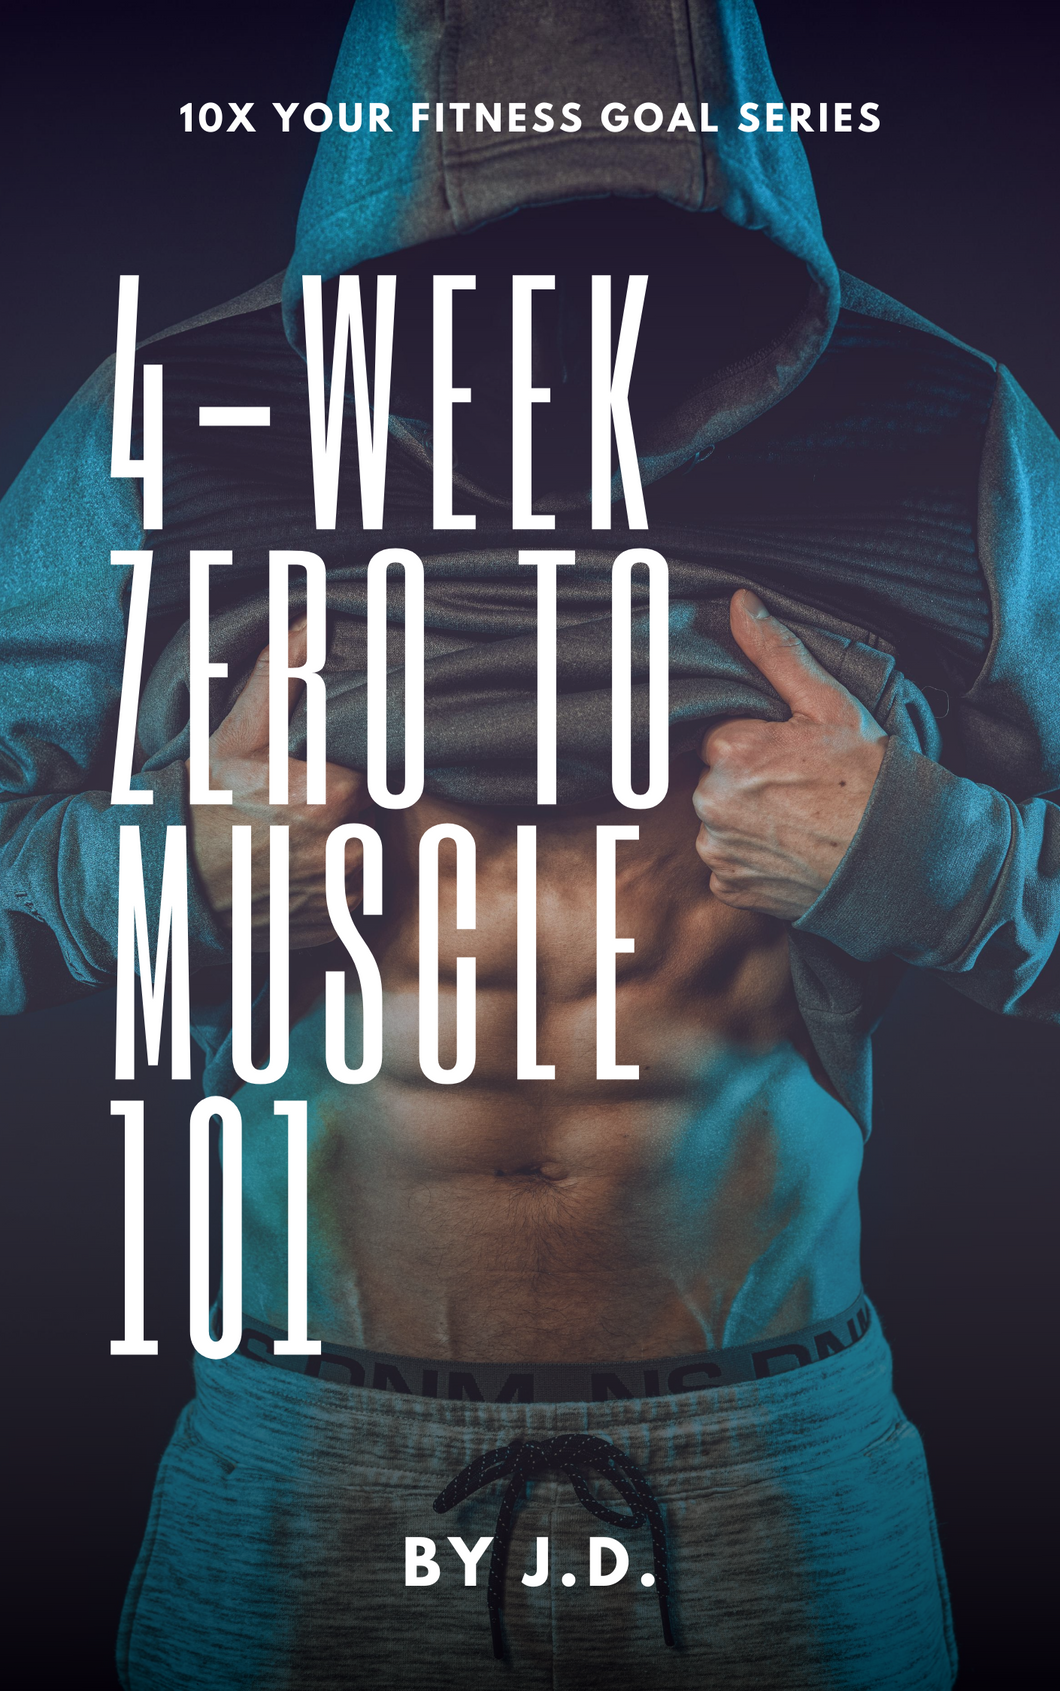 4-Week Zero To Muscle 101 By J.D.